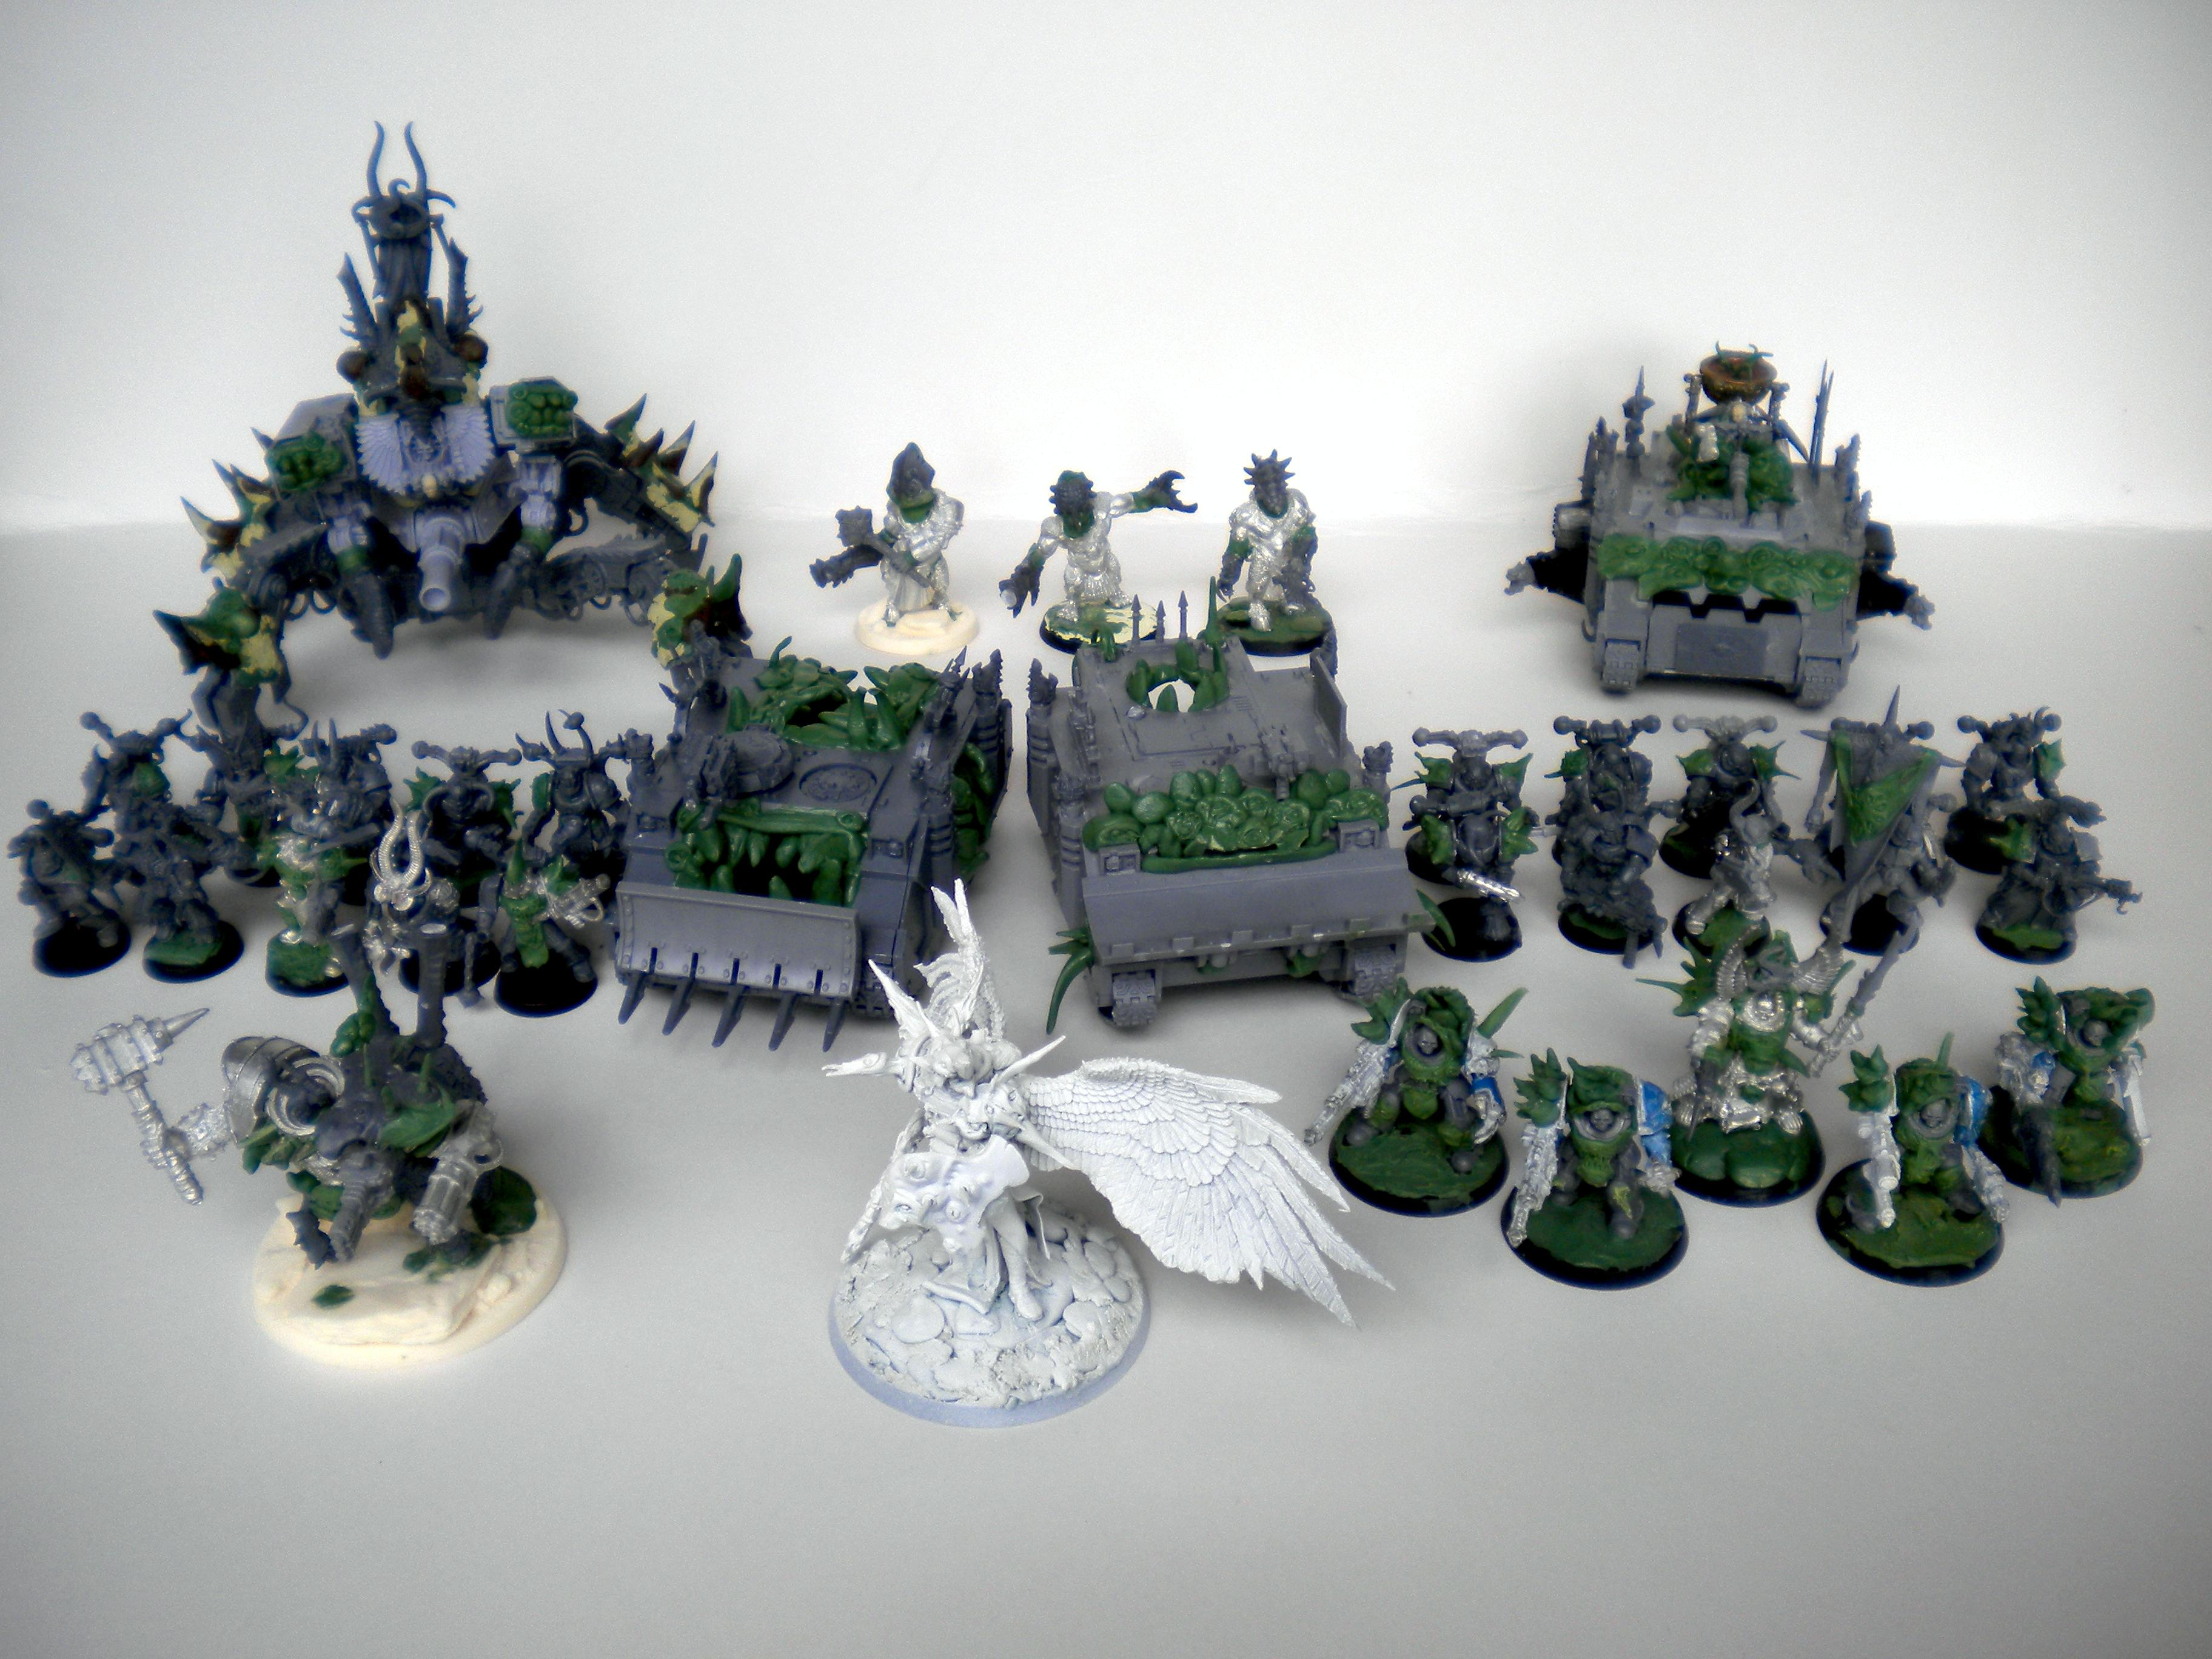 Bio Mechanical, Chaos, Chaos Army, Chaos Rhino, Chaos Space Marines, Conversion, Daemon Prince, Defiler, Nurgle, Nurgle Army, Painted Chaos, Plague Marines, Thousand Sons, Tzeentch